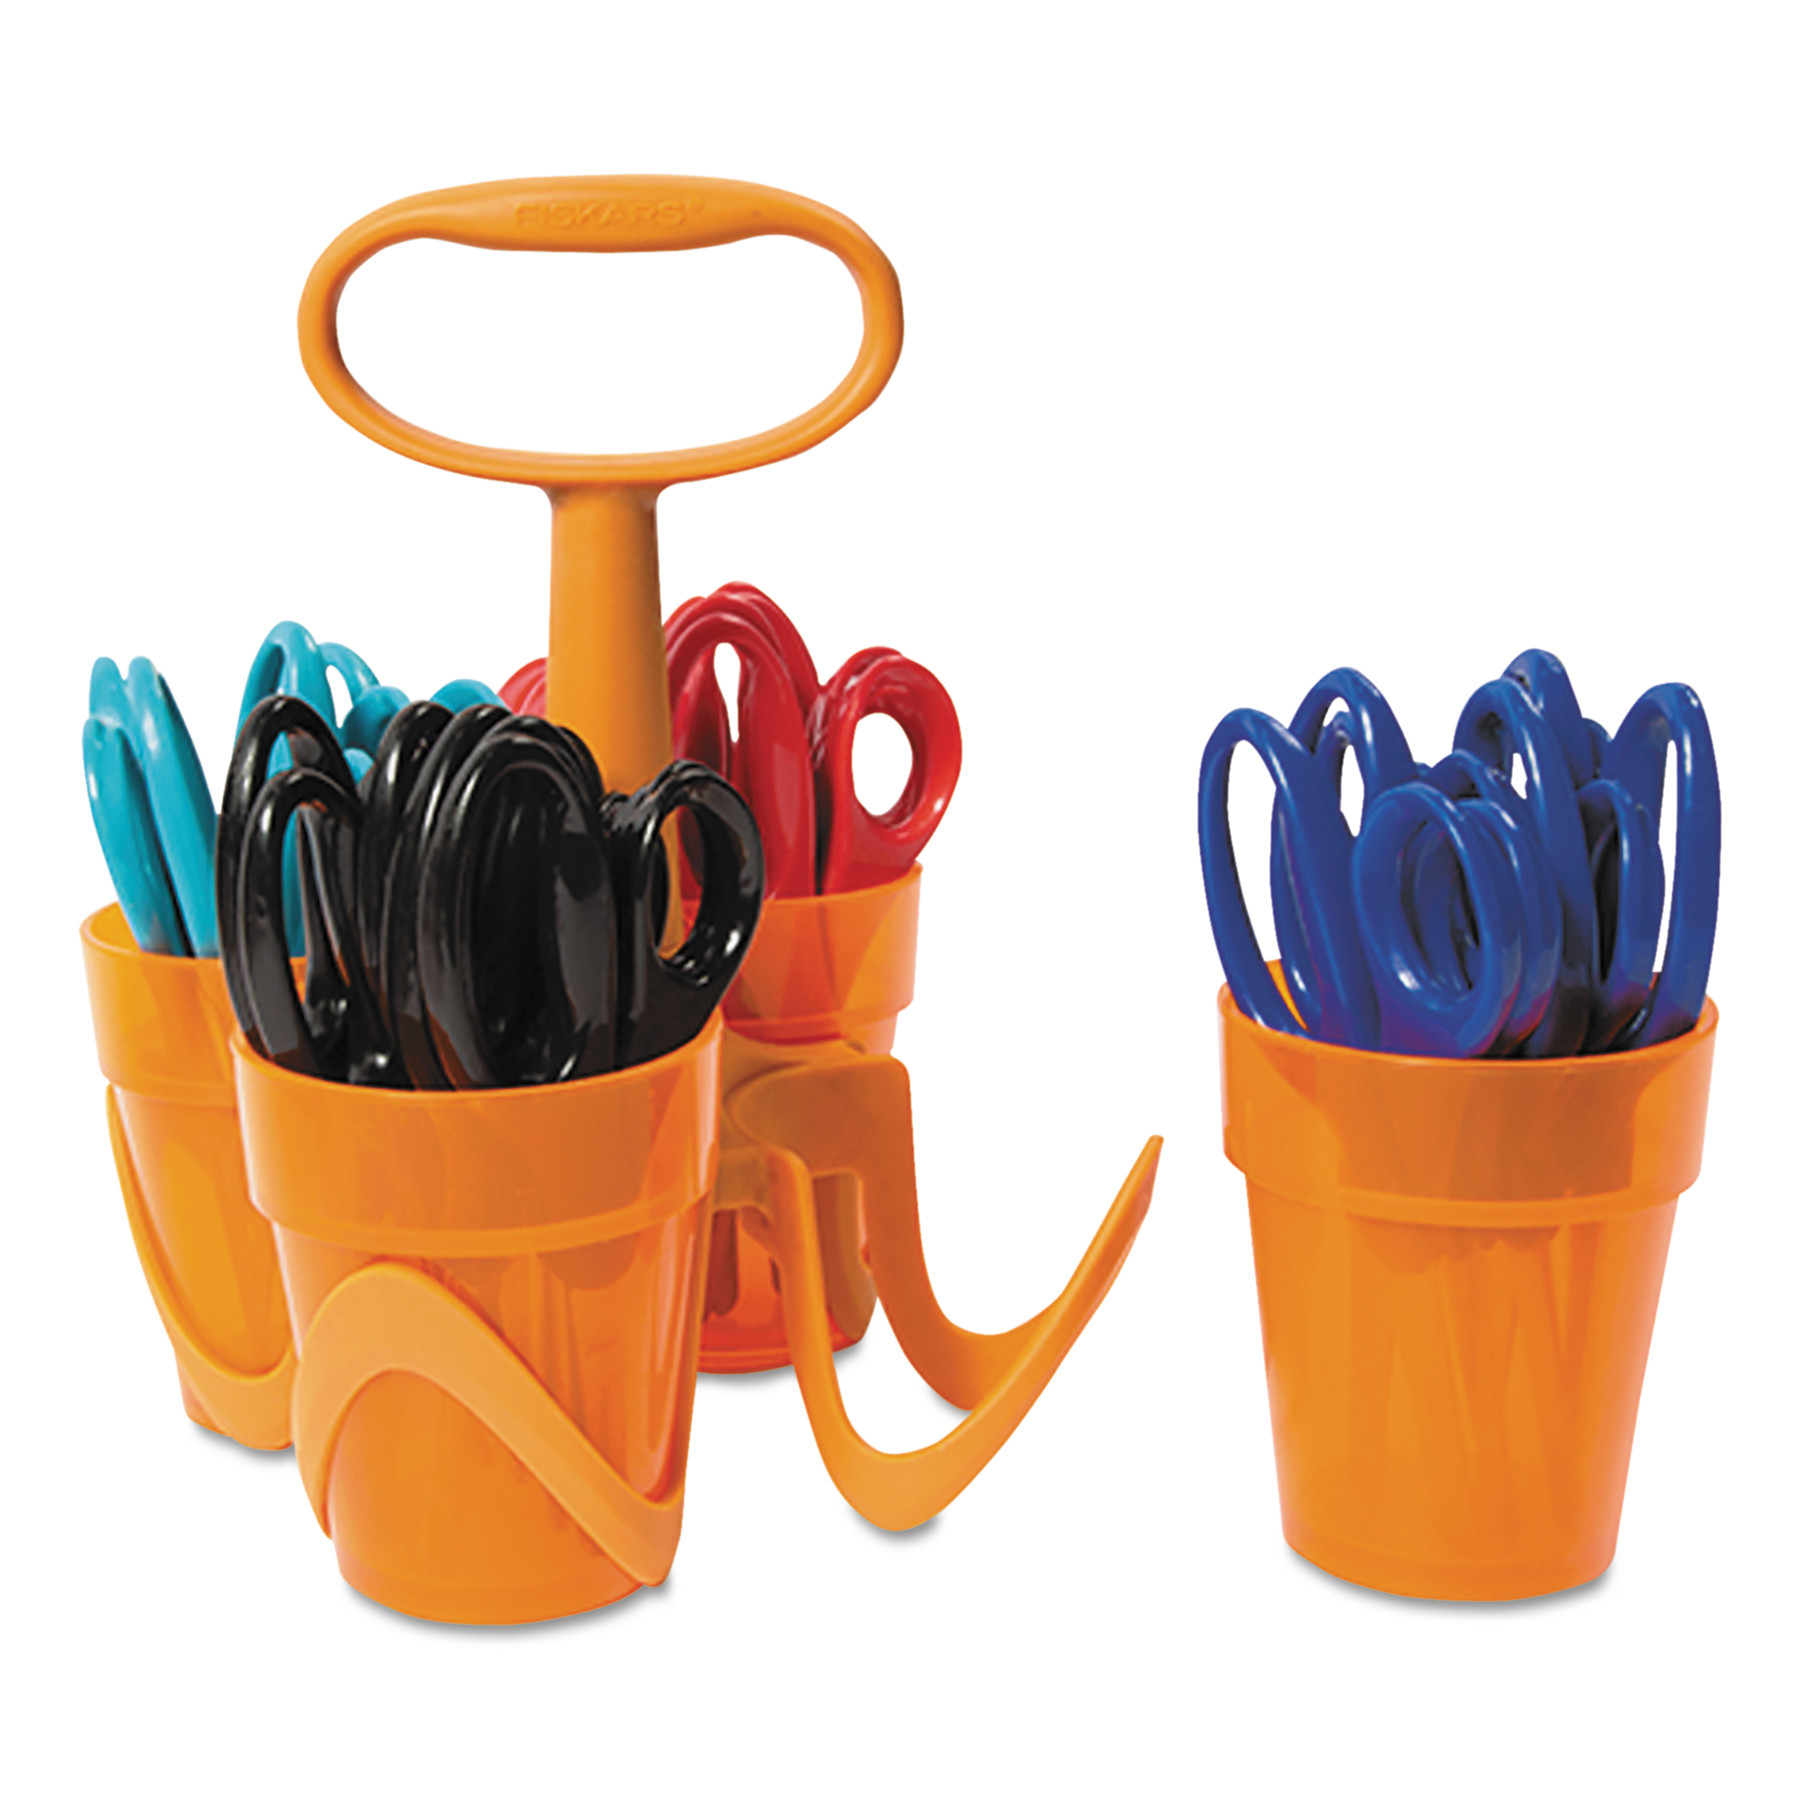 5 In Pointed Classpack Caddy 24 Pcs